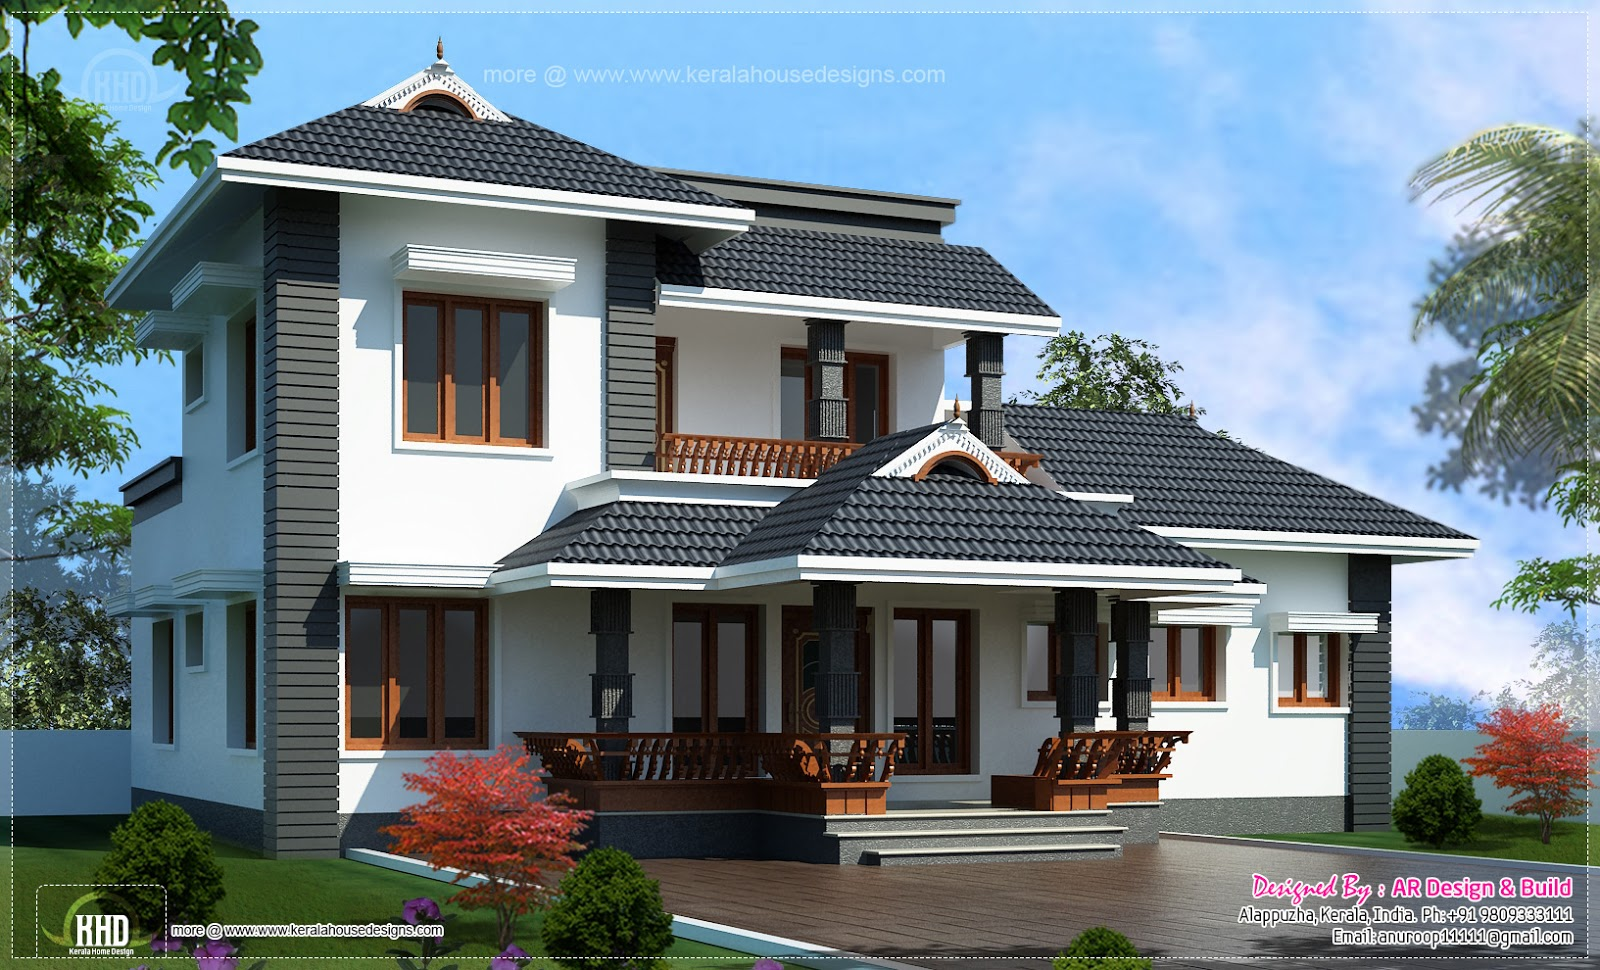 2000 4 bedroom sloping roof residence kerala home design and floor plans Home design